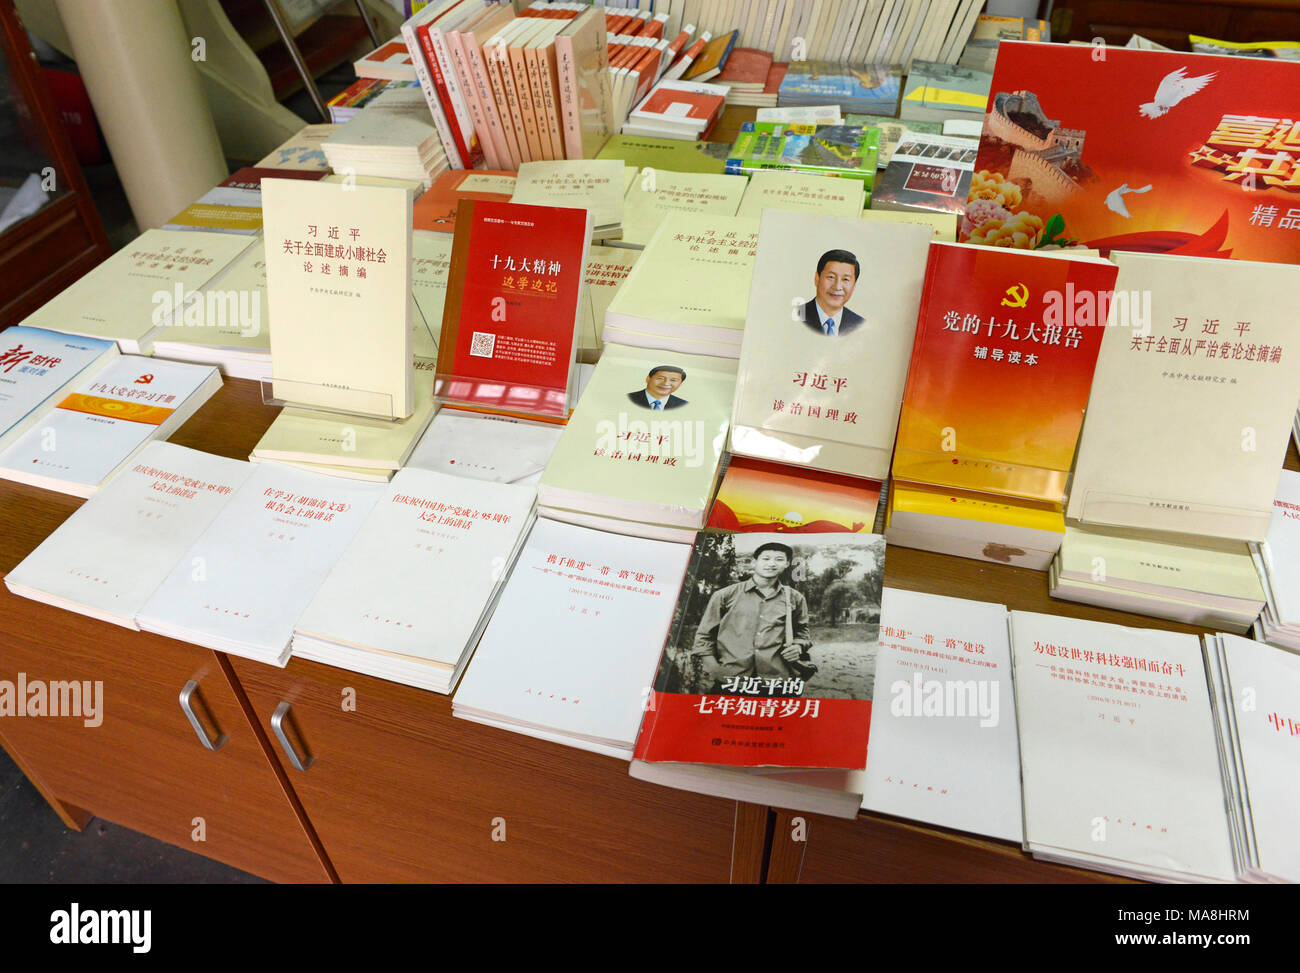 Some works on and/or by President Xi Jinping for sale in a bookshop in Beijing - Stock Image